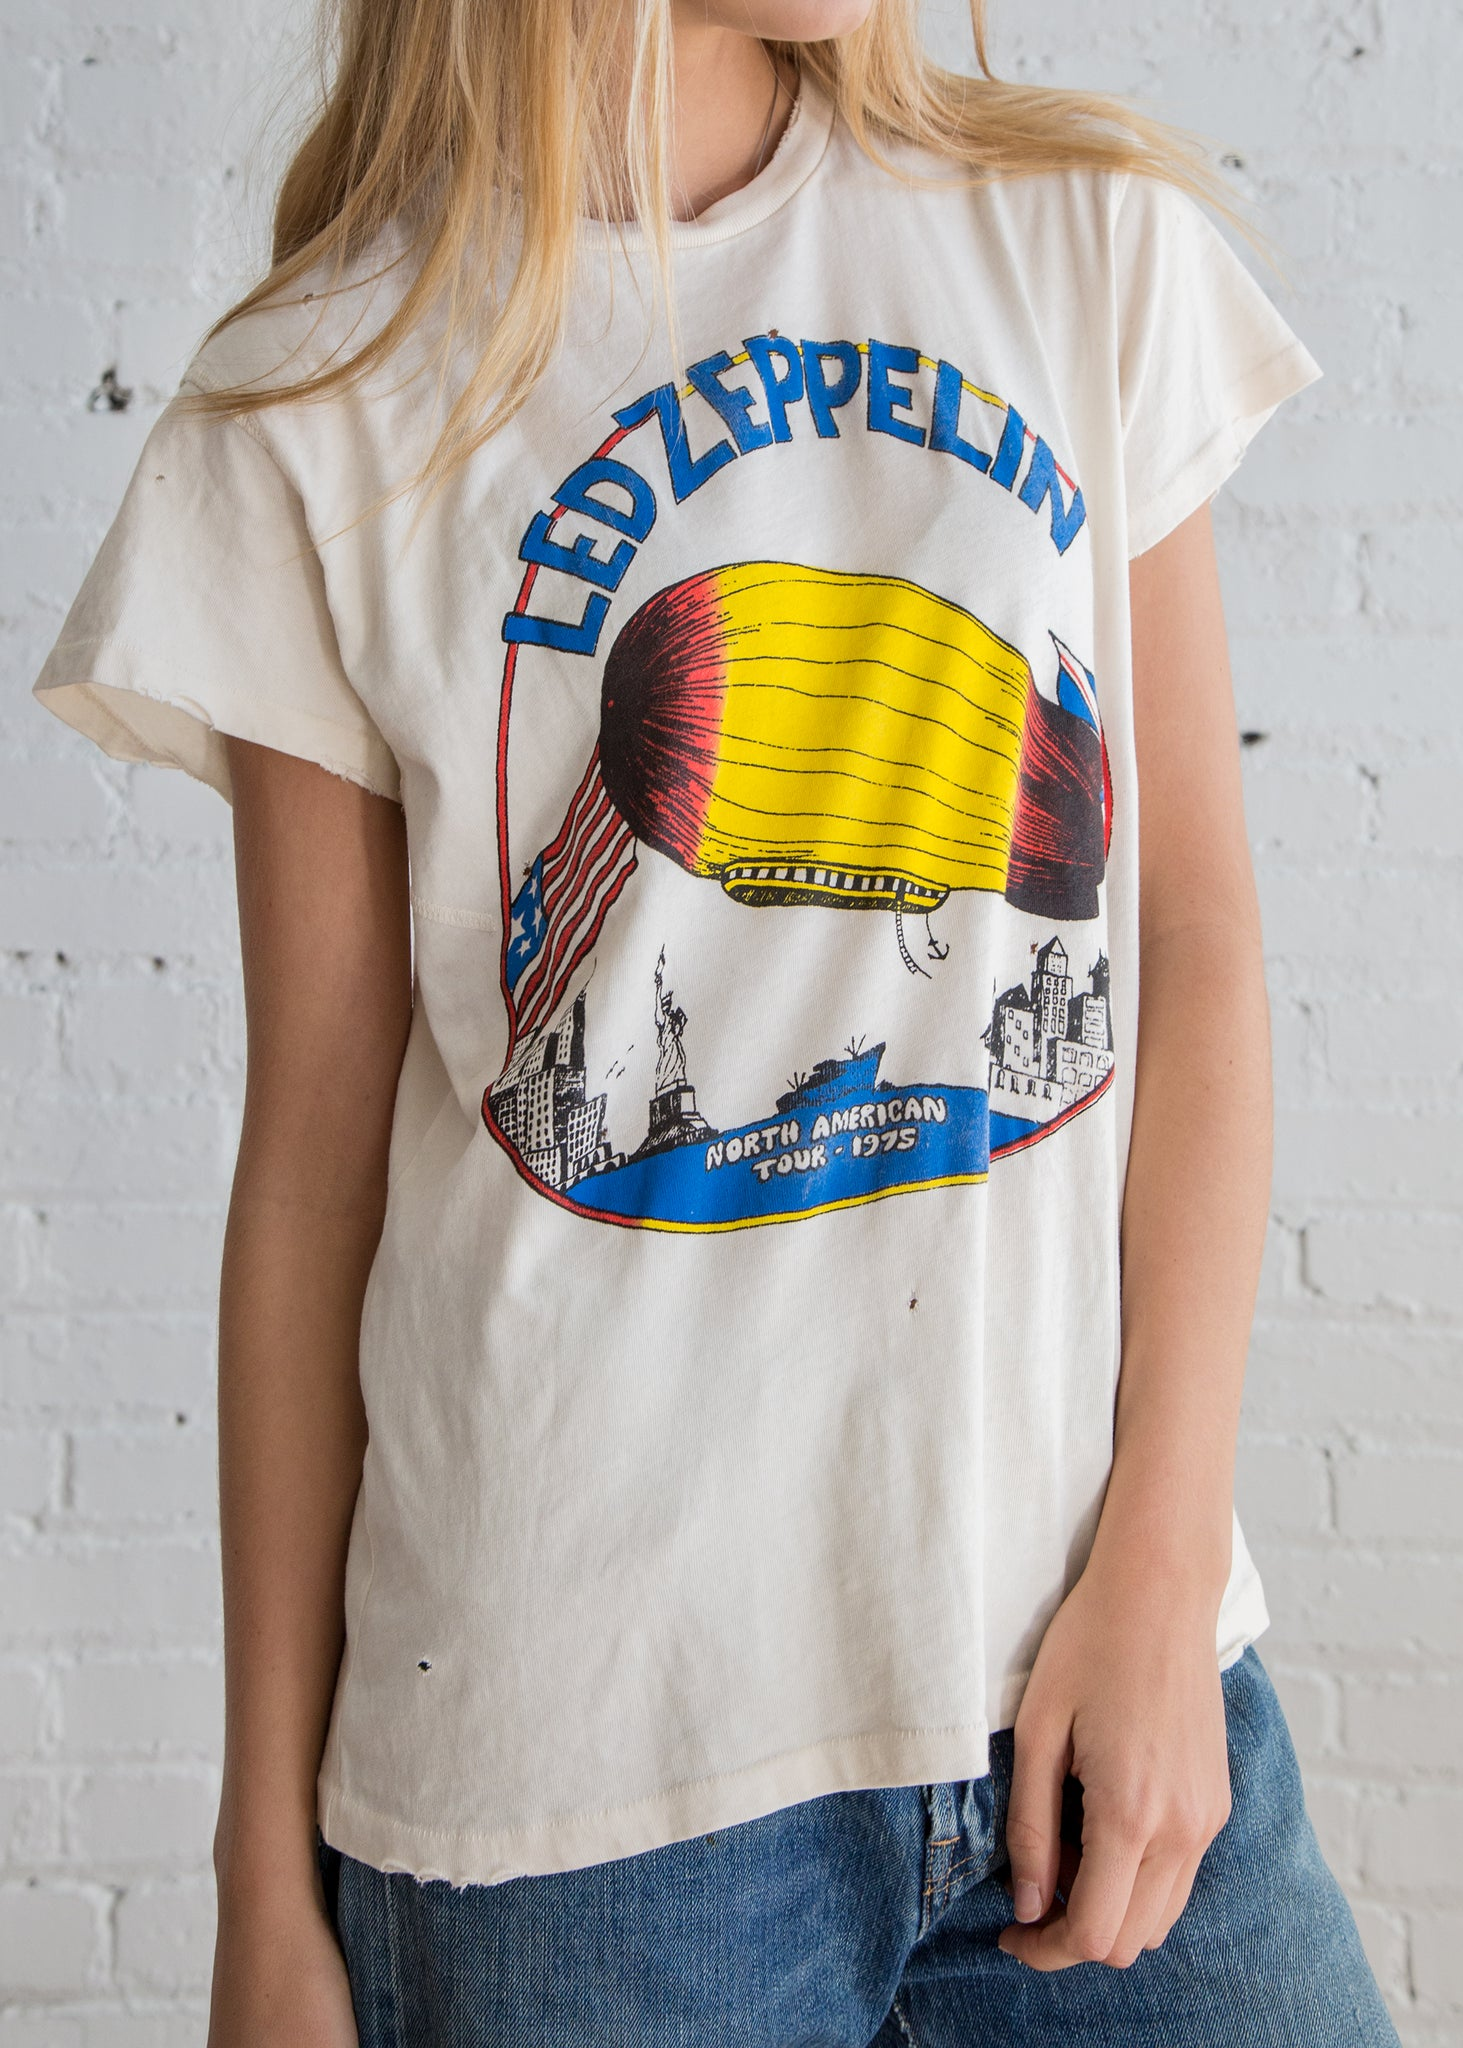 Made Worn Led Zeppelin N. American Tour Dirty White - SOLD OUT